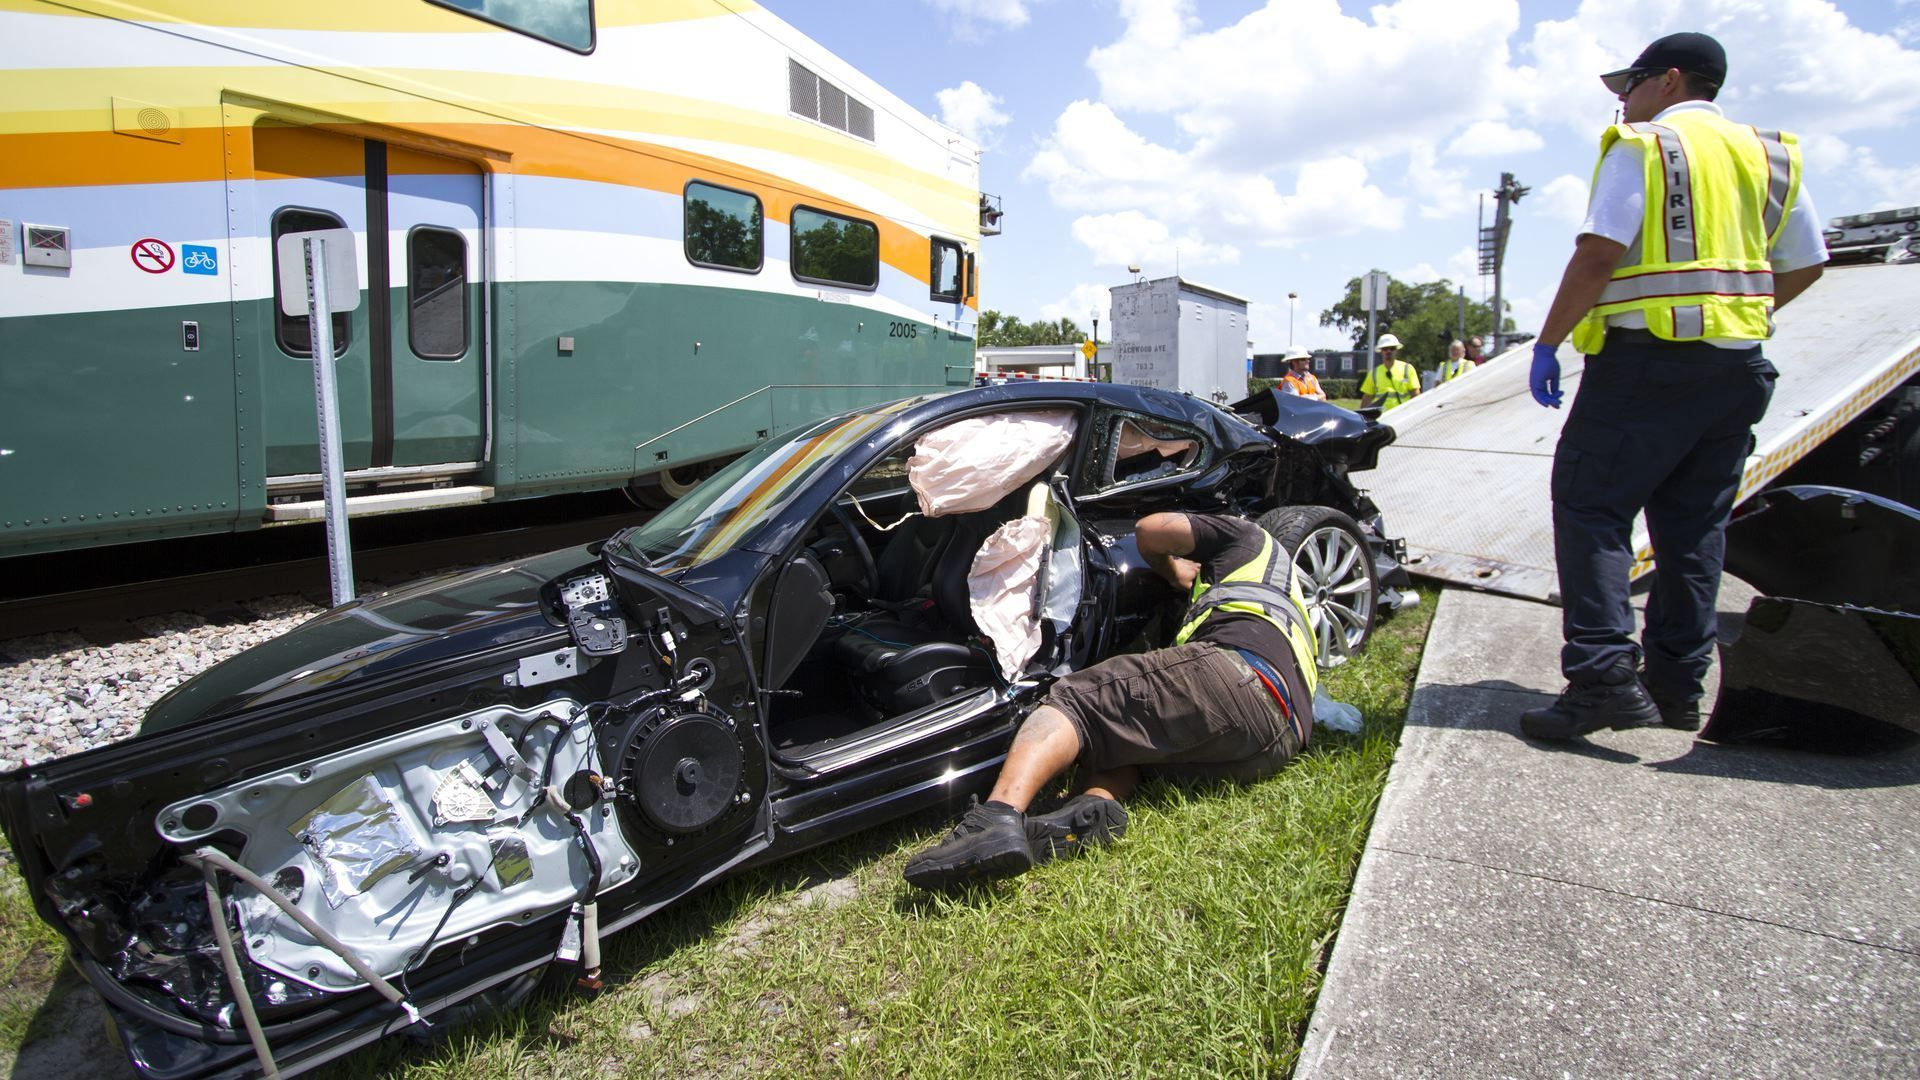 SunRail hits car in Maitland, woman collapsed in shock - Orlando